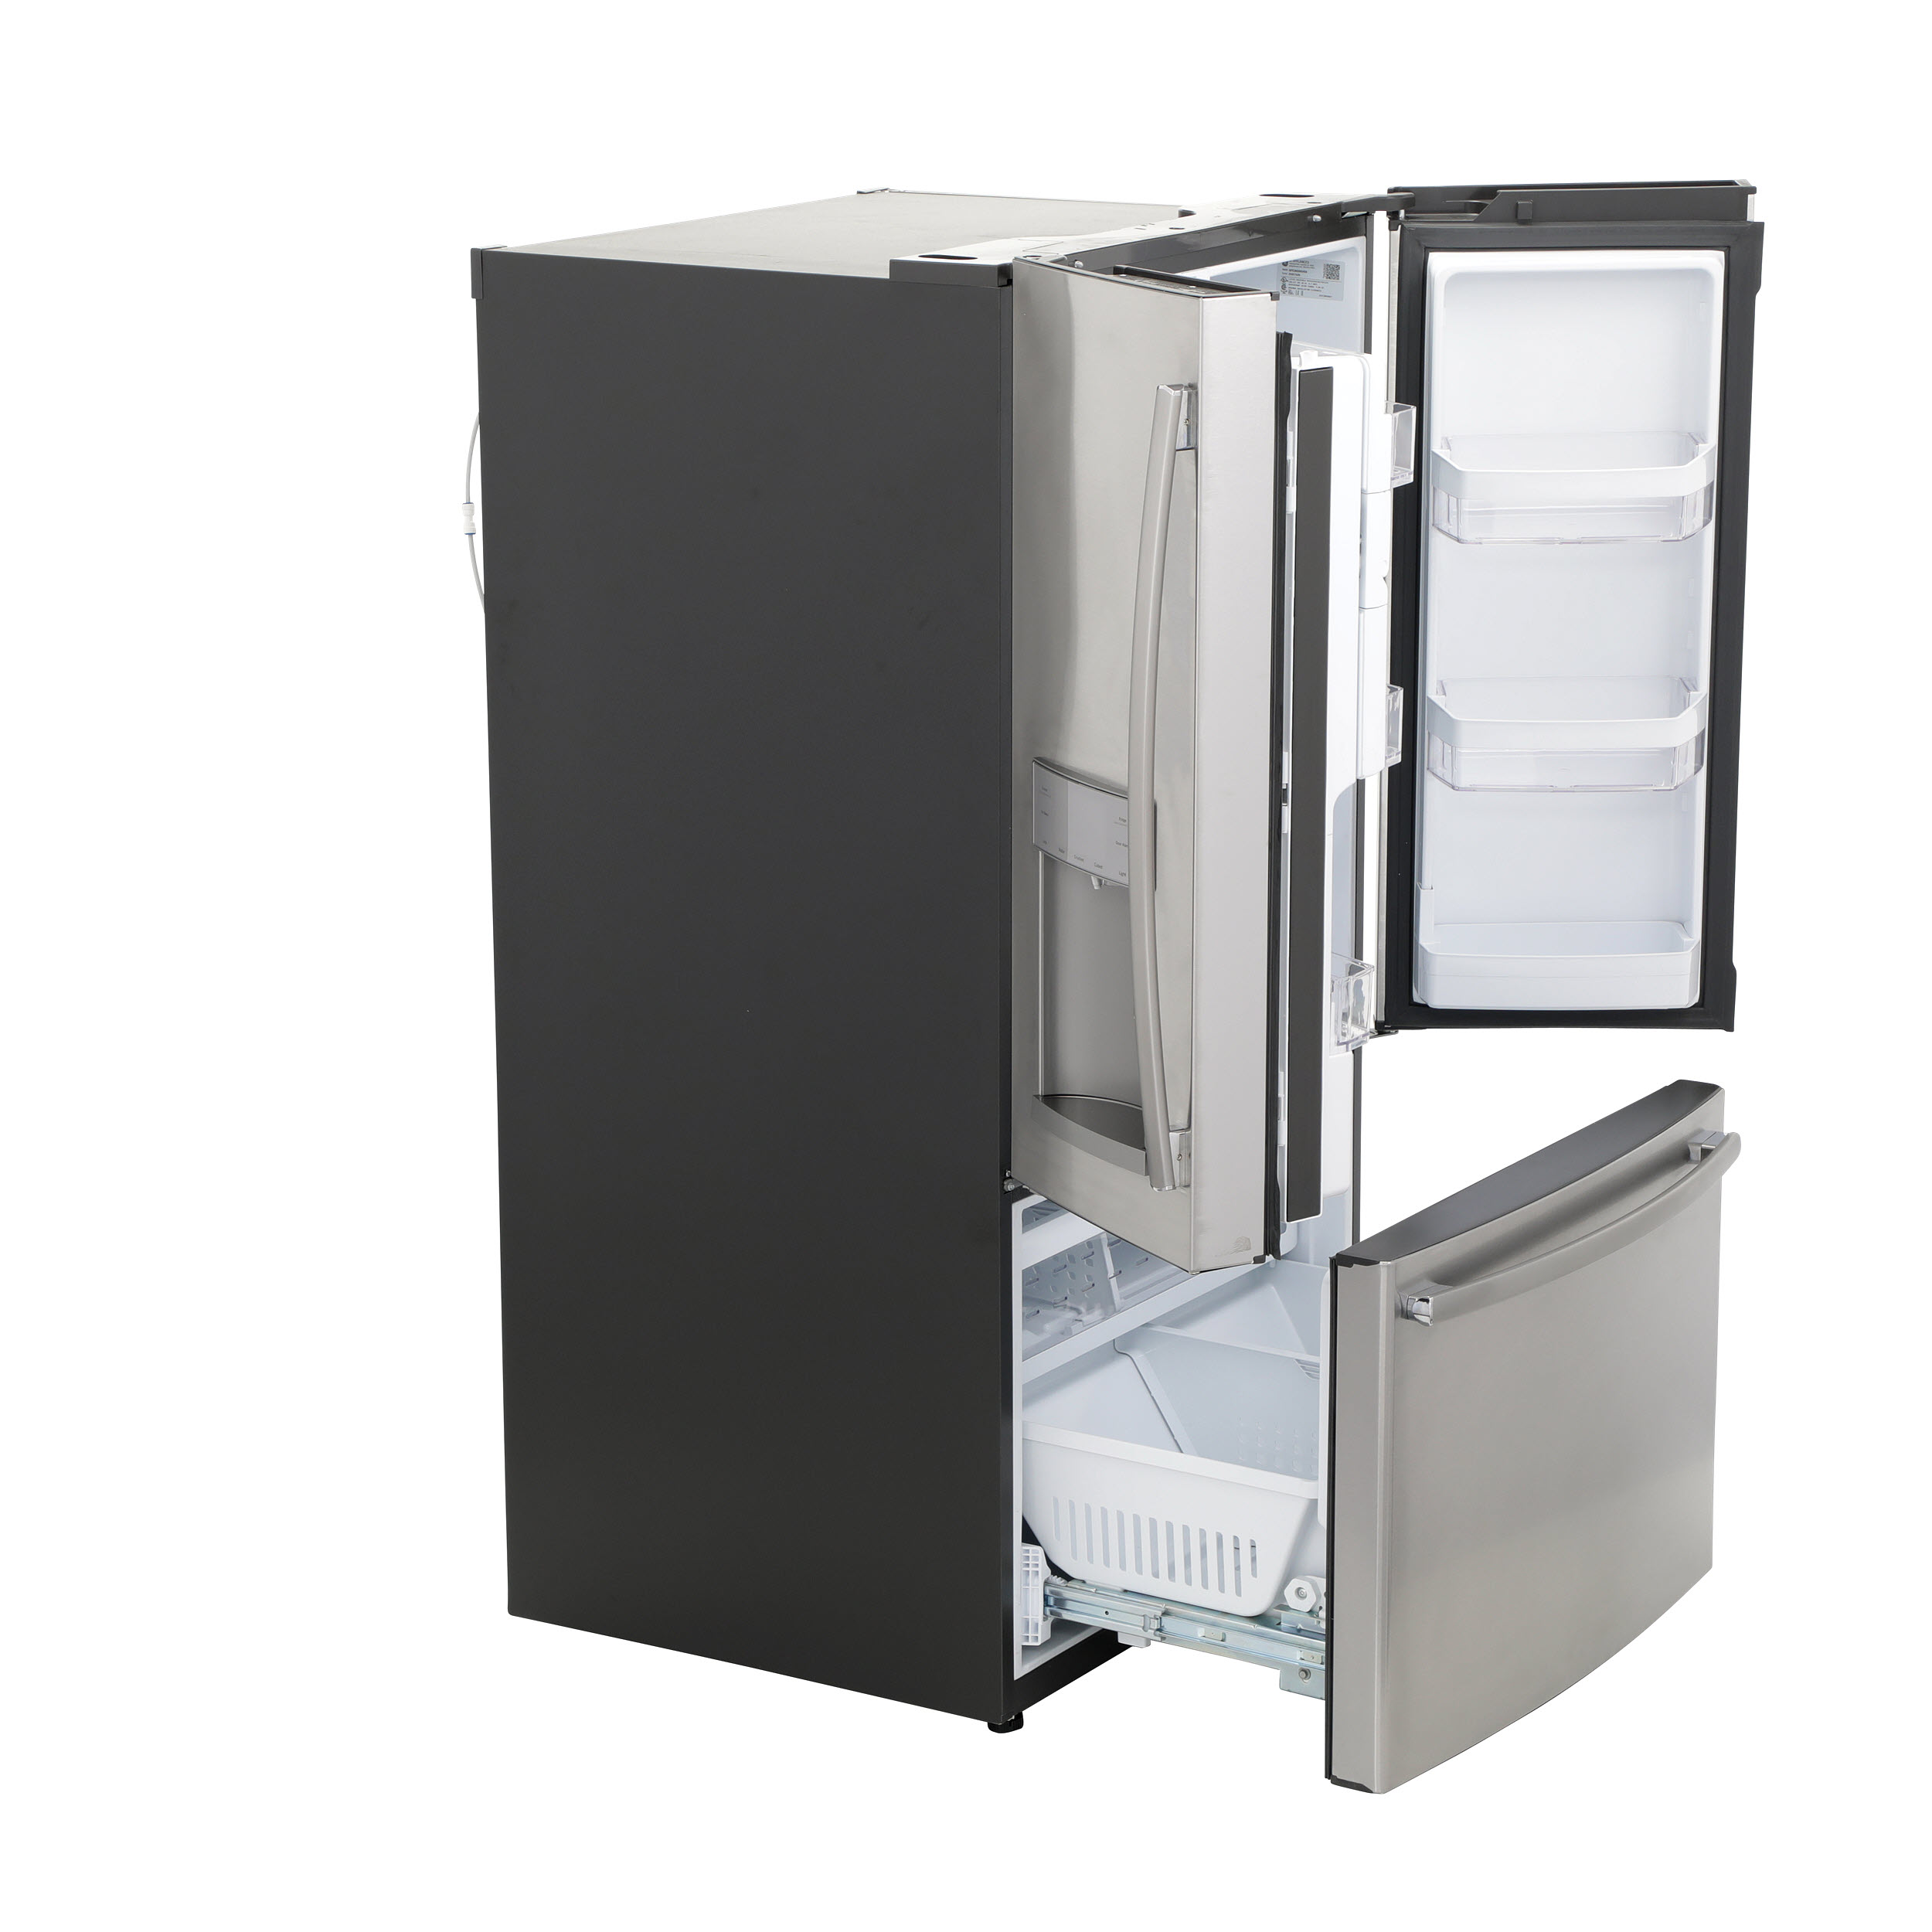 Model: GFE28GSKSS | GE GE® ENERGY STAR® 27.7 Cu. Ft. French-Door Refrigerator